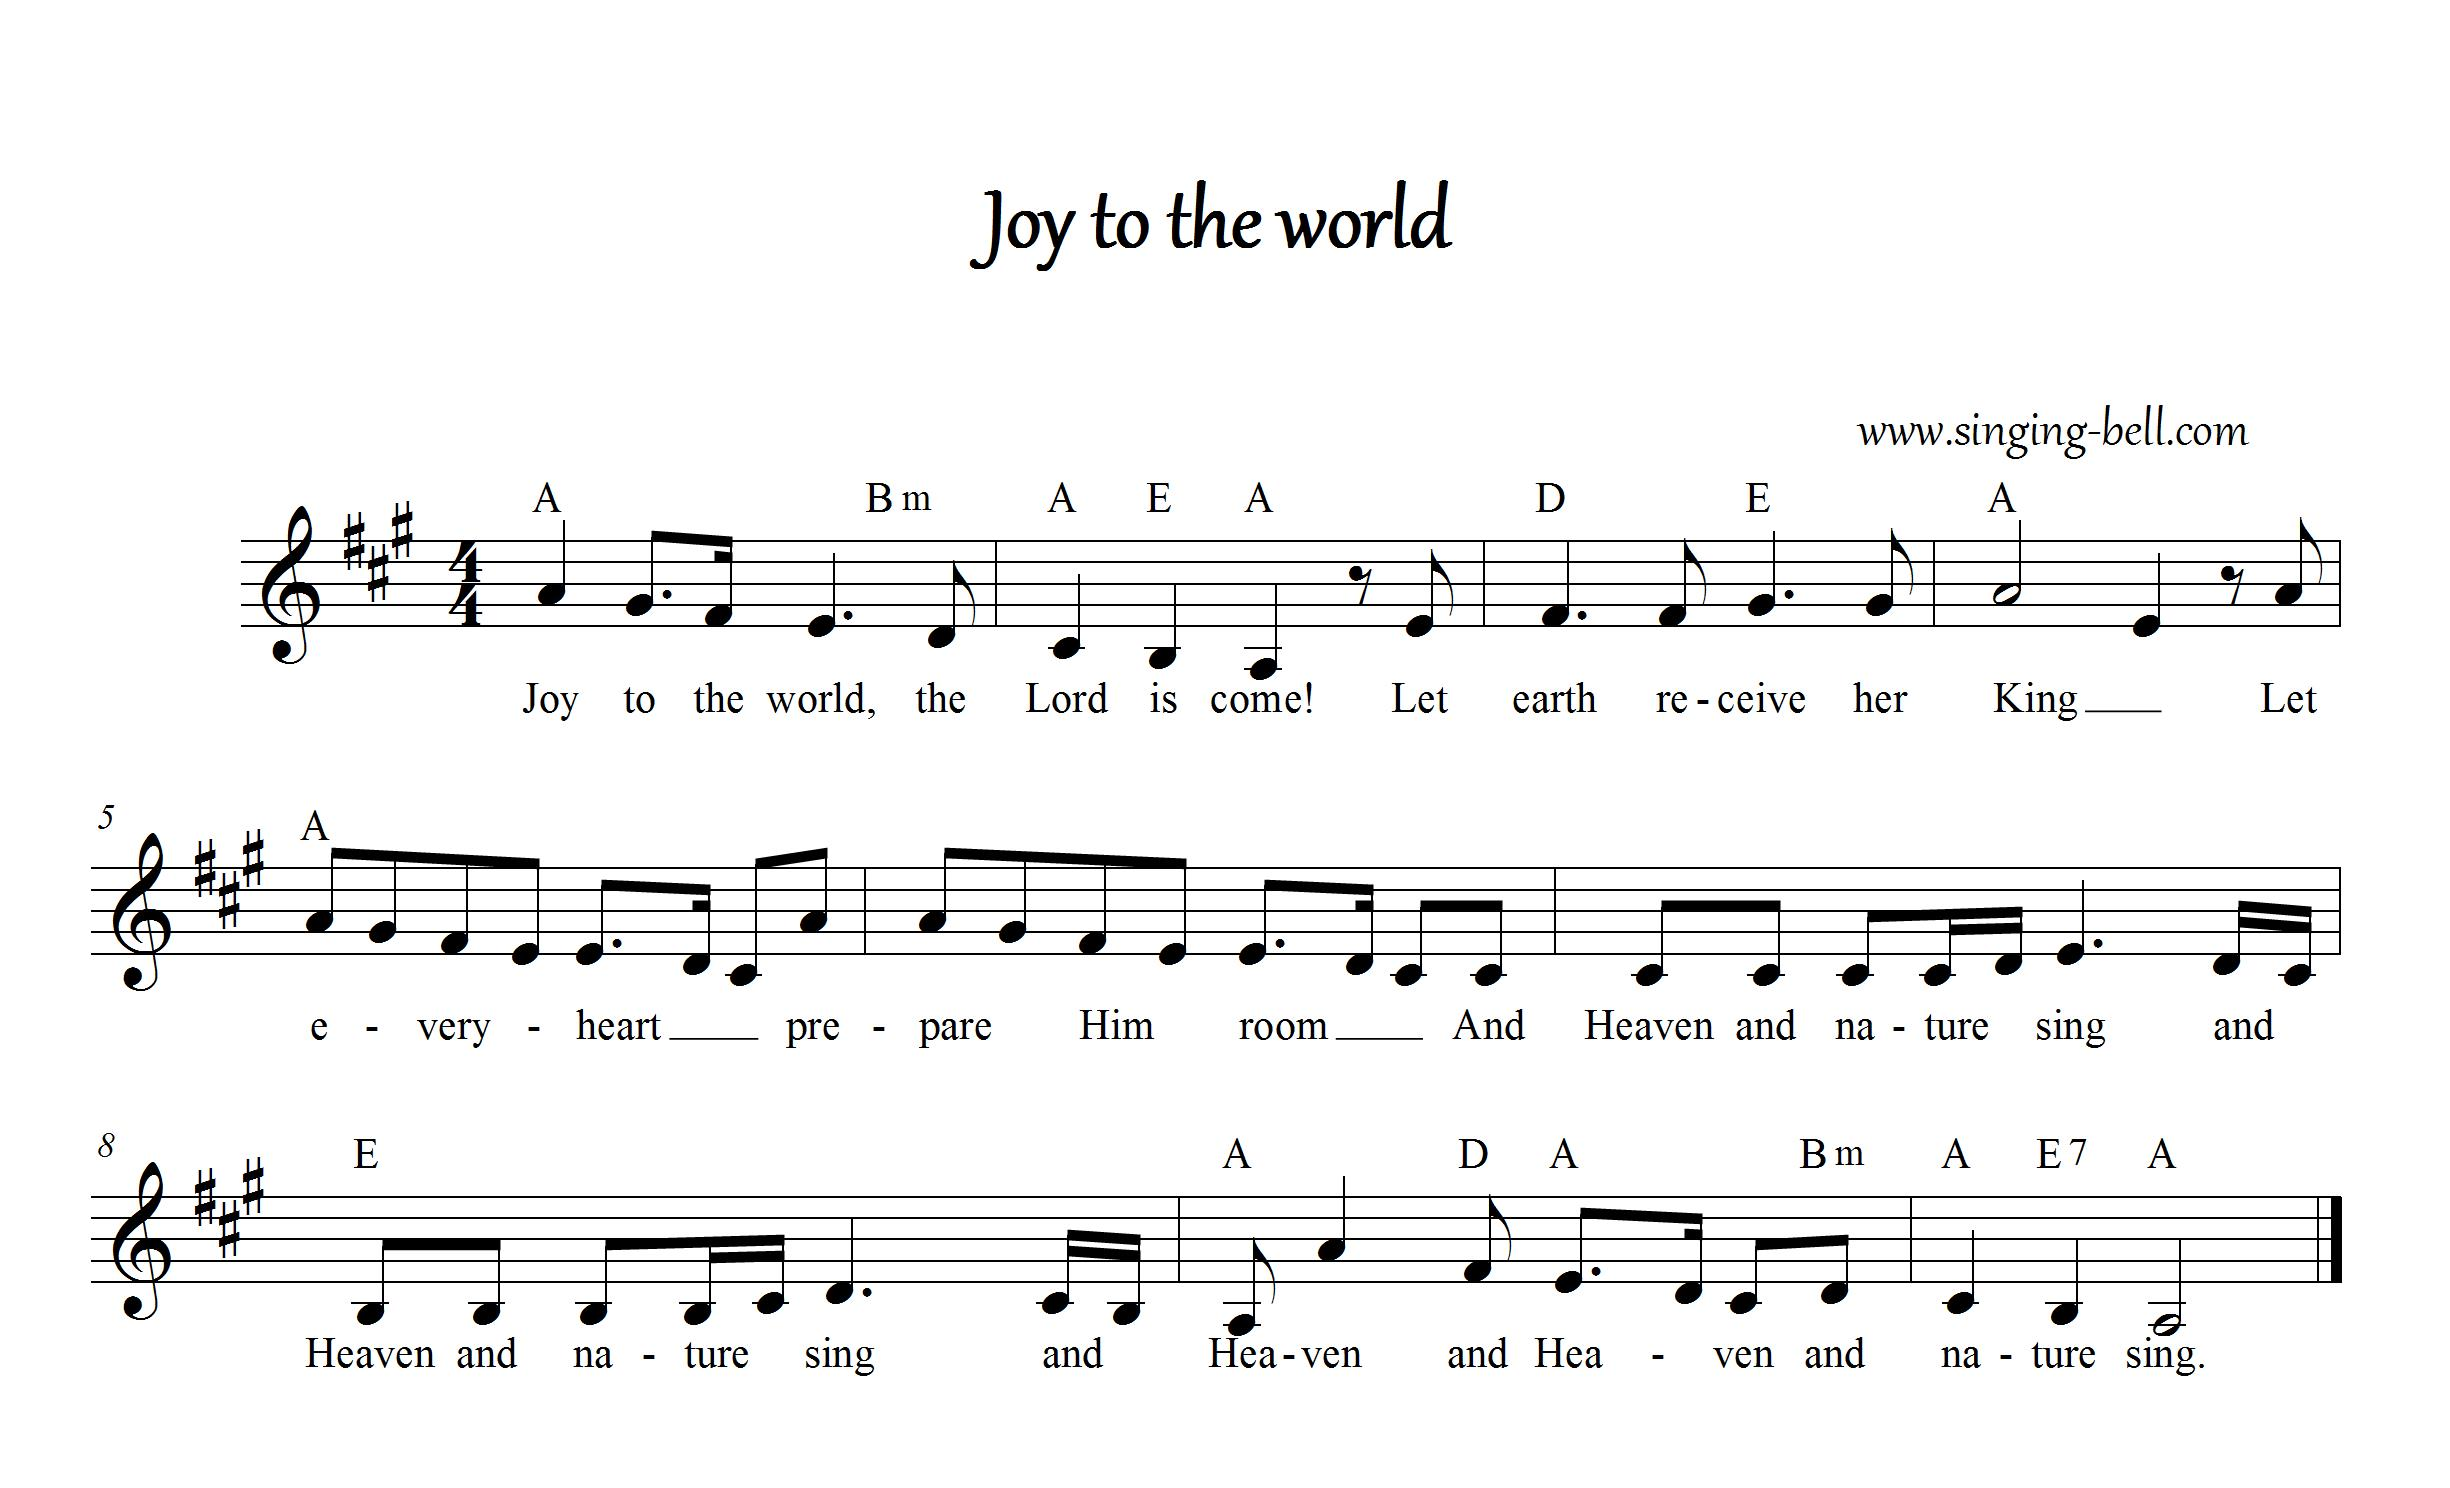 joy to the world_singing bell